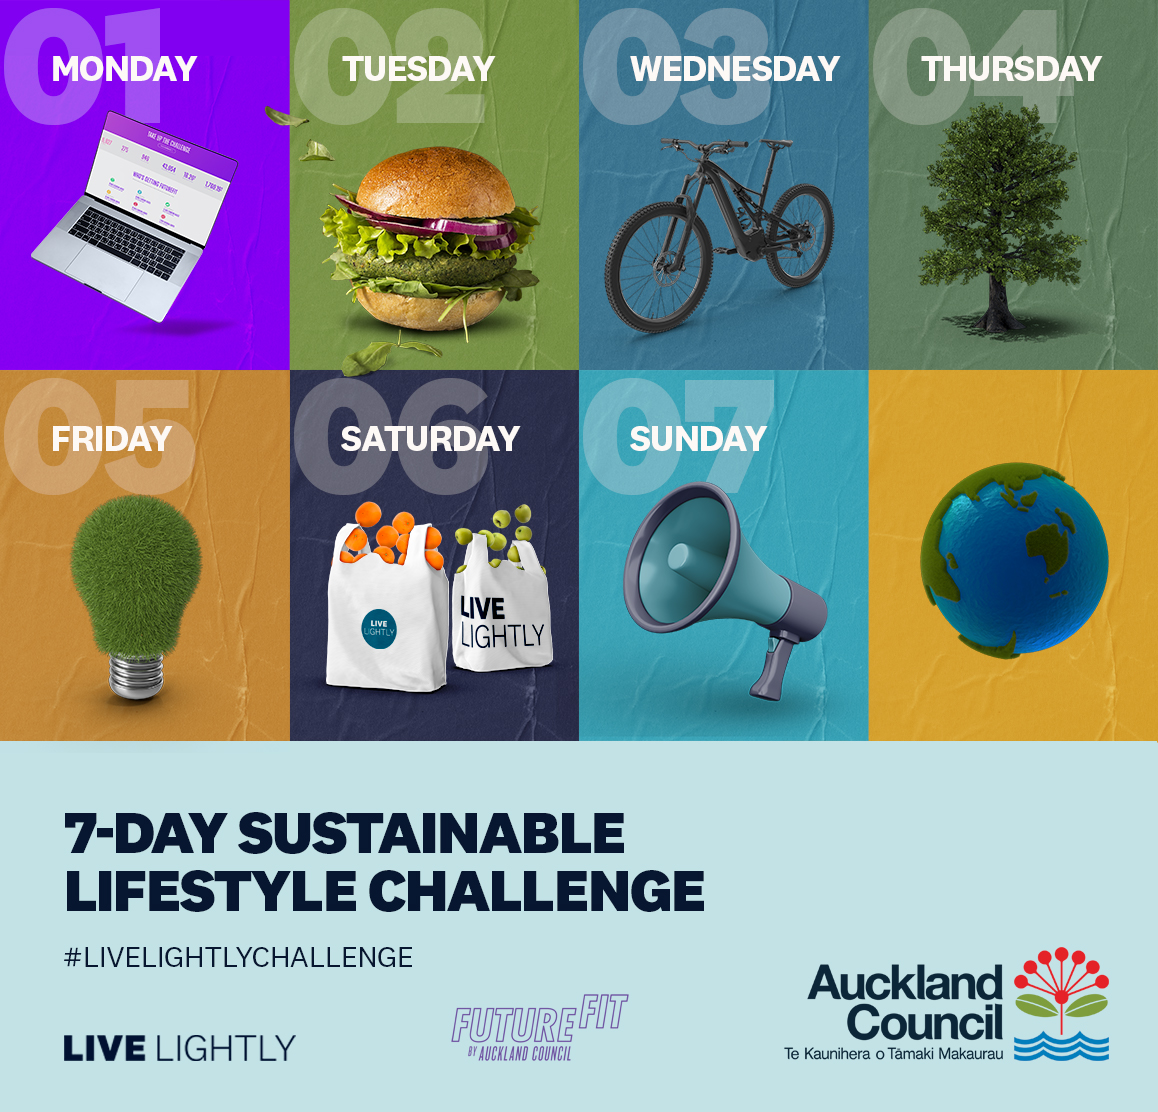 Live Lightly: 7-Day Sustainable Lifestyle Challenge